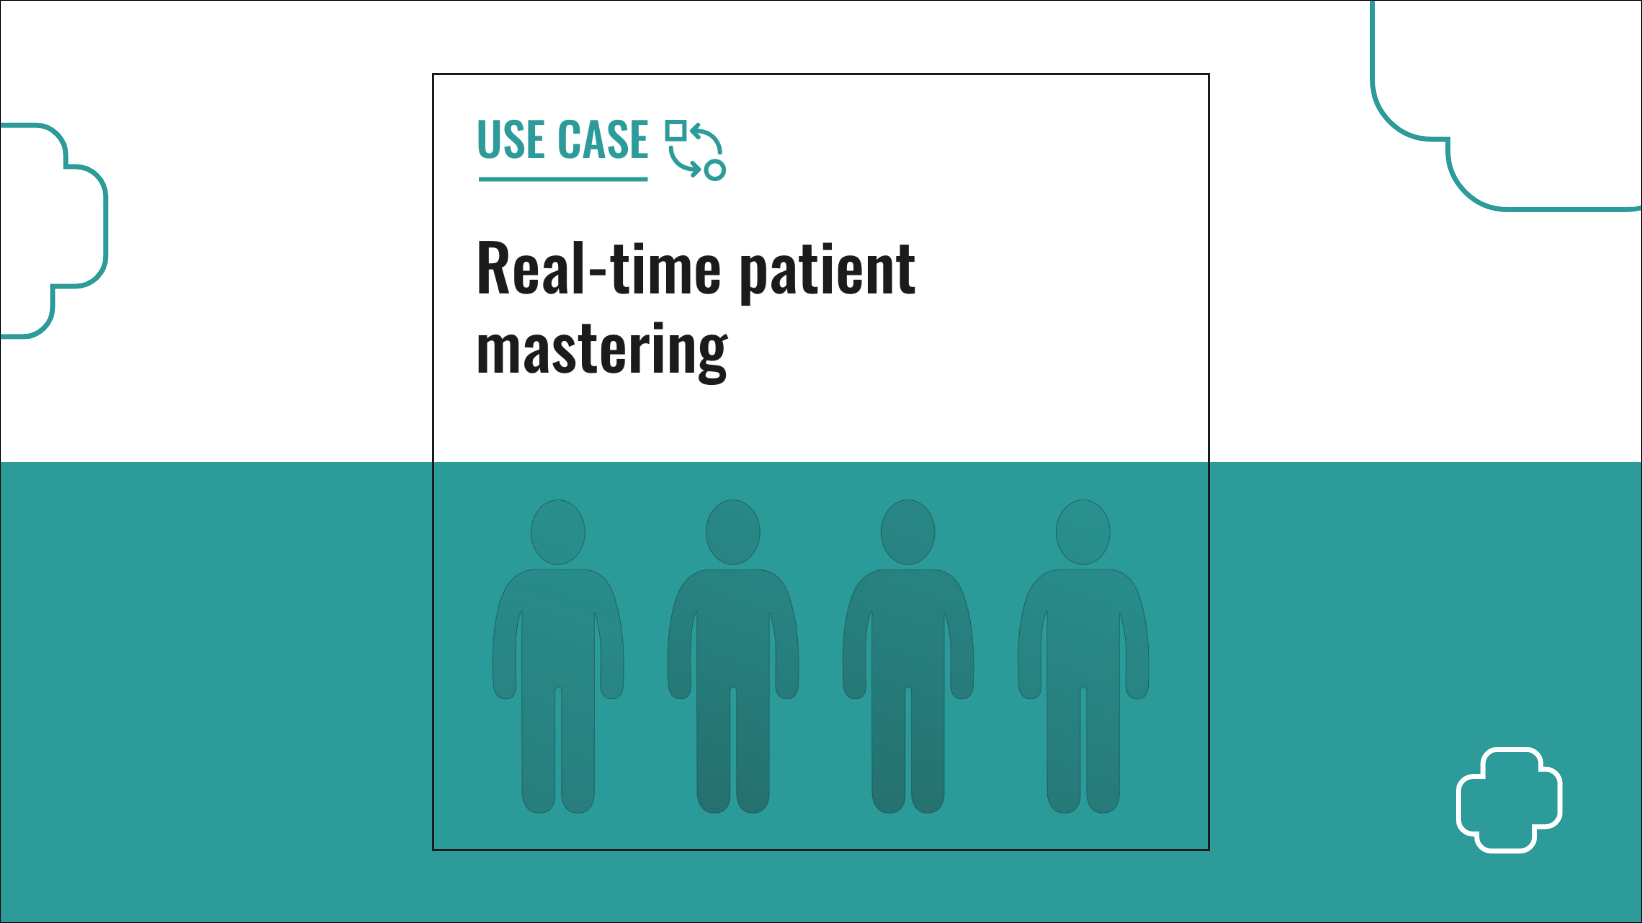 Use Case: Real-time patient mastering